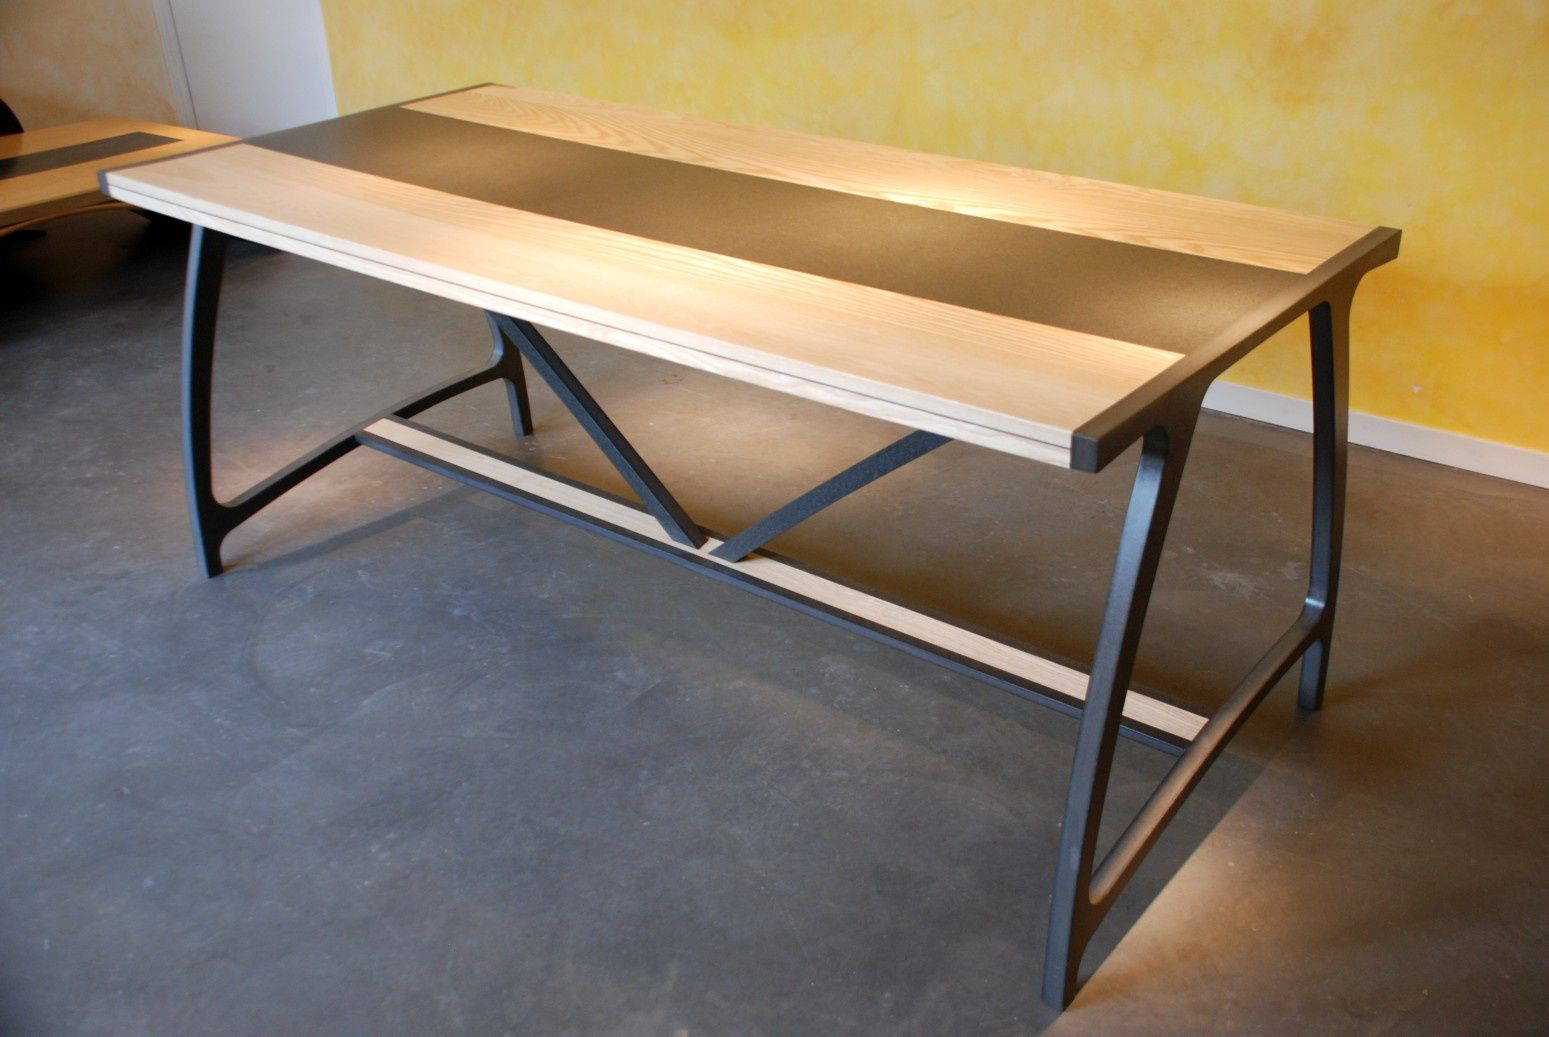 Table Manger Design Bulle Atelier Pourquoi Pas